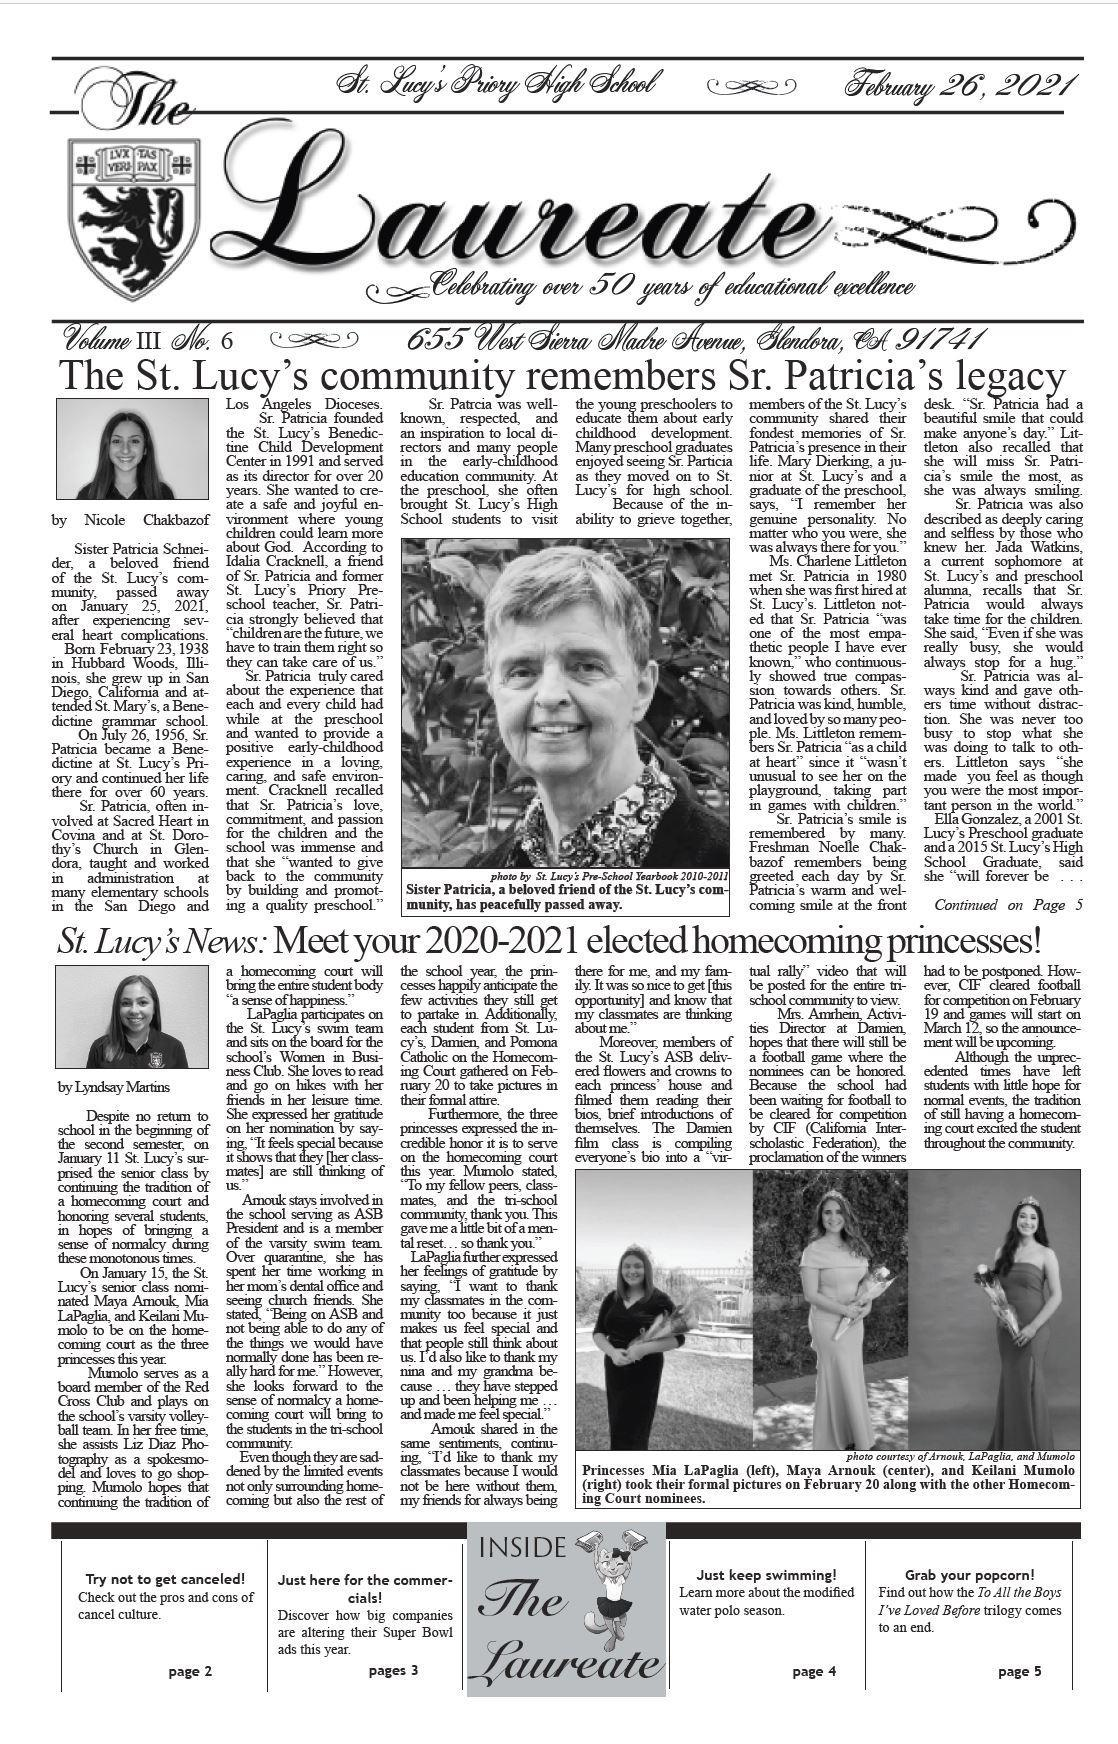 St. Lucy's The Laureate newspaper cover image